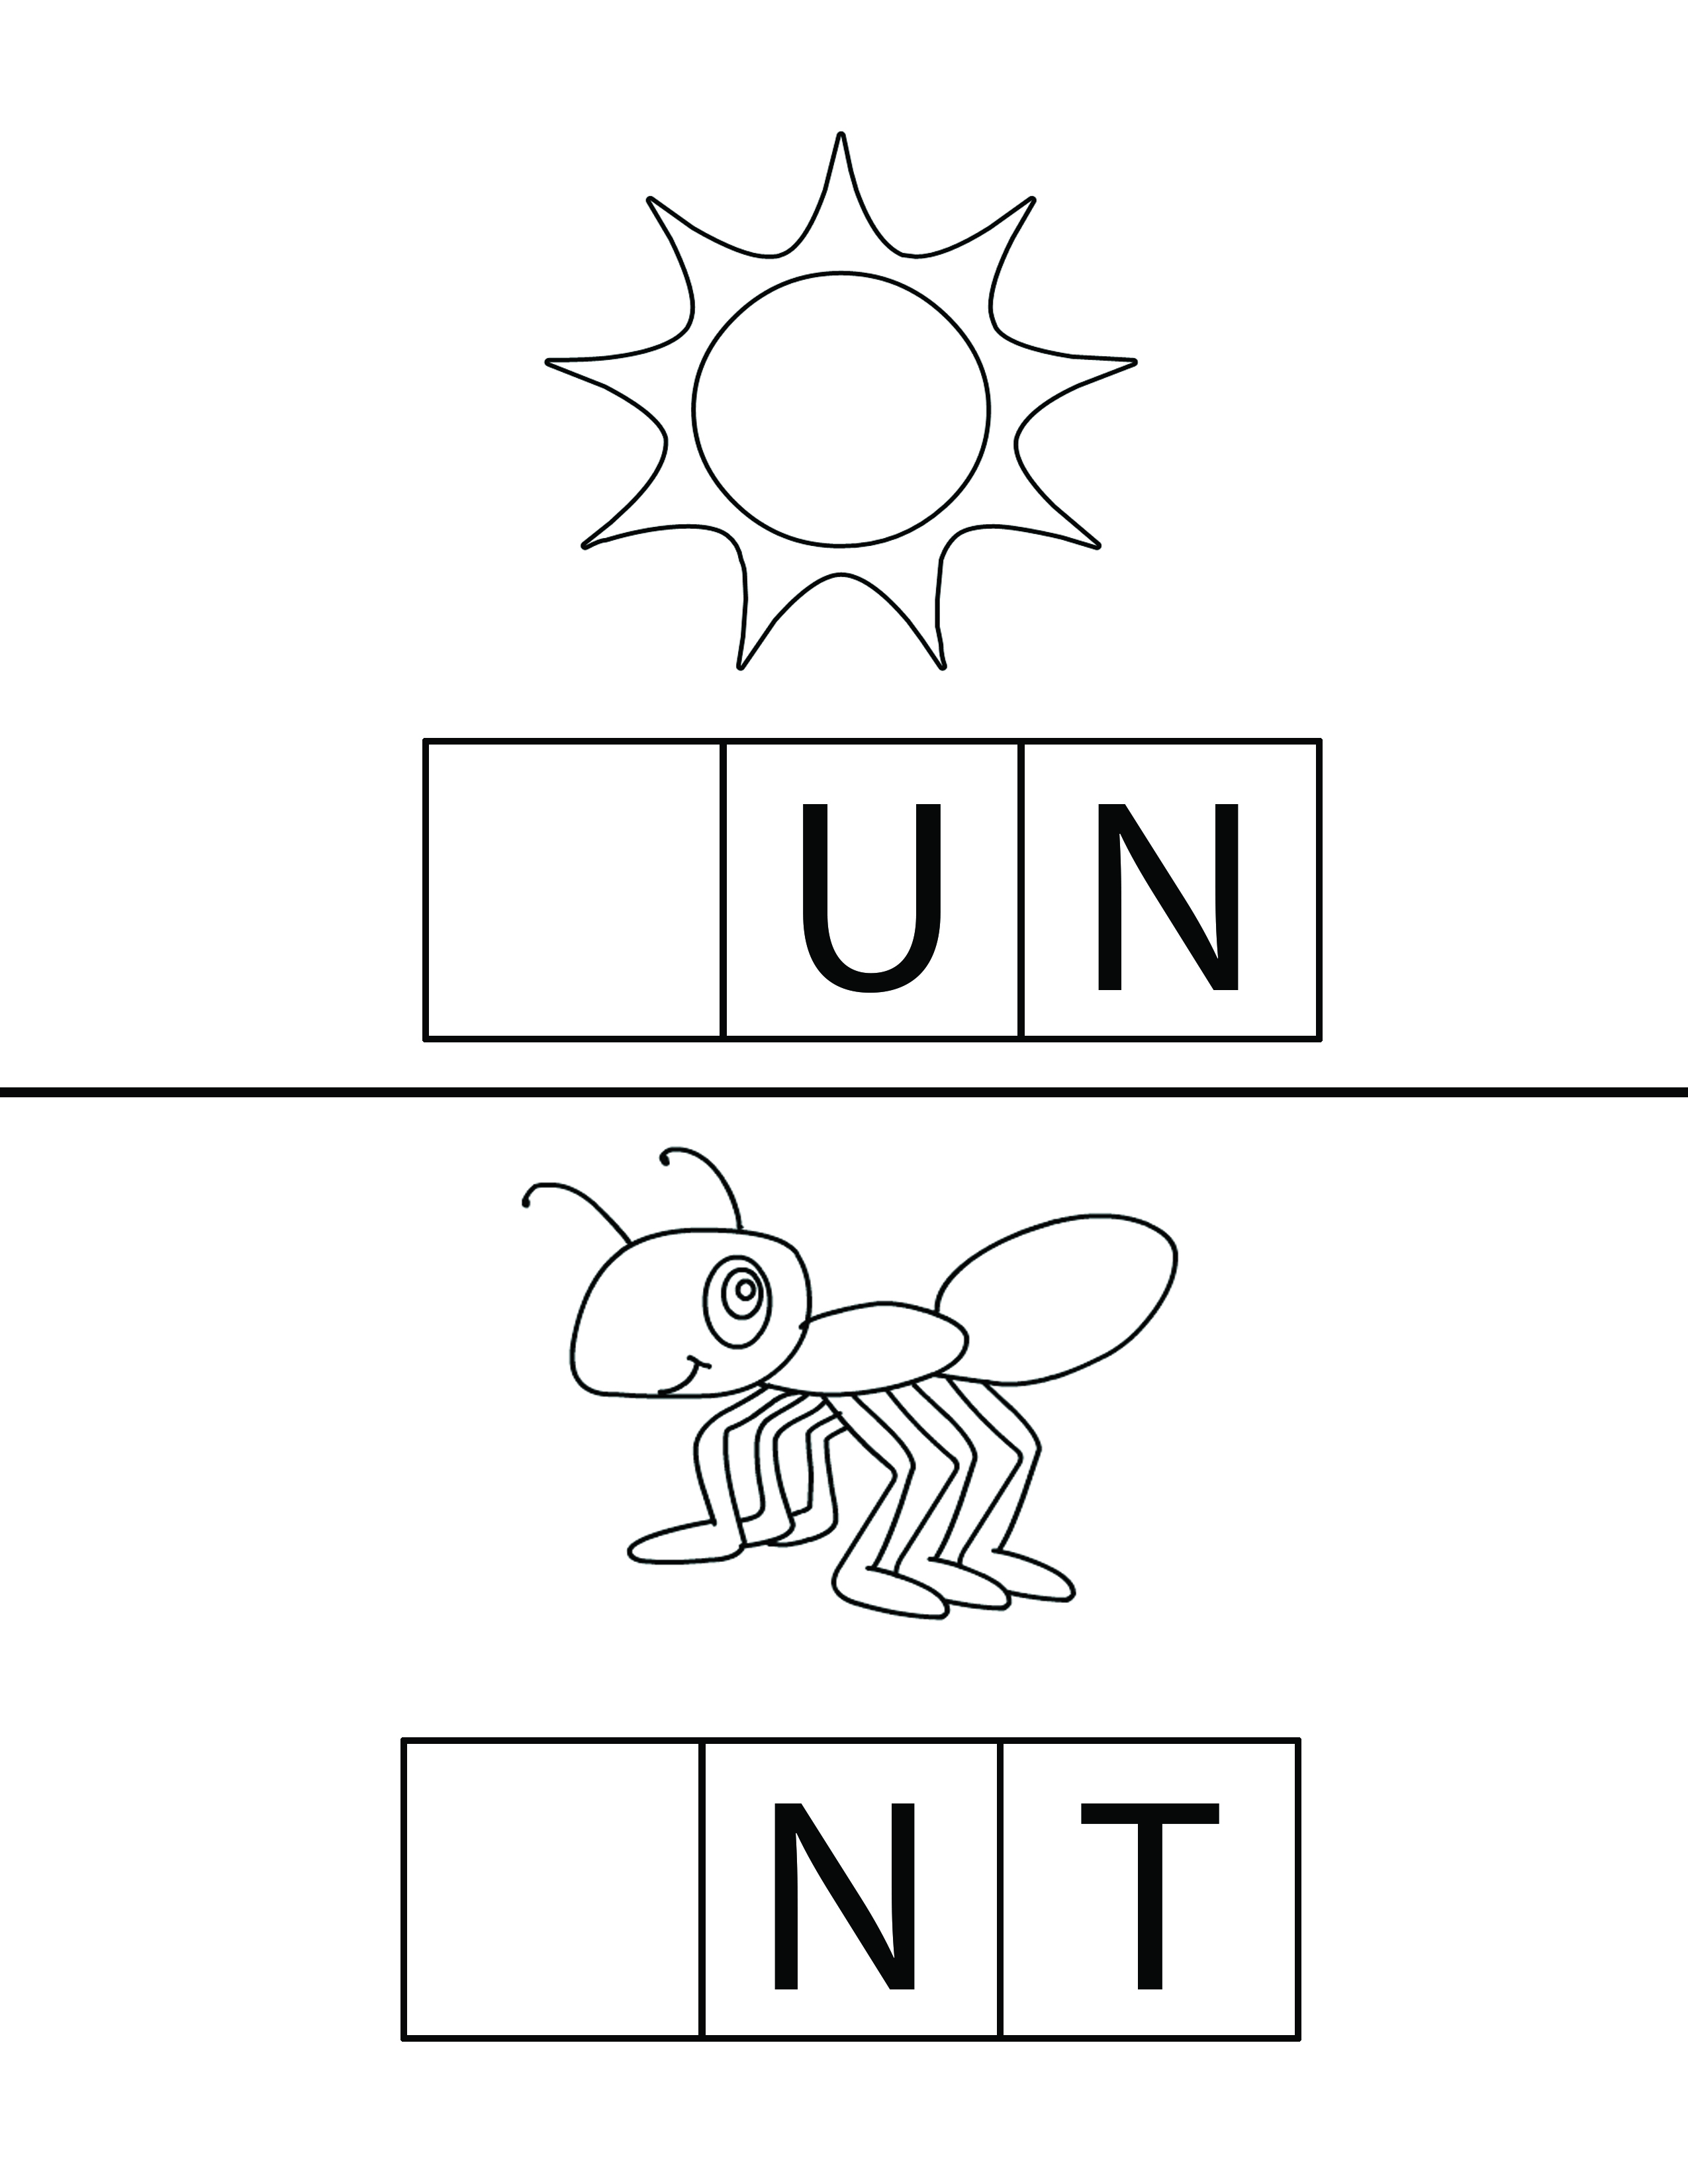 Sun And Ant Spelling Worksheets